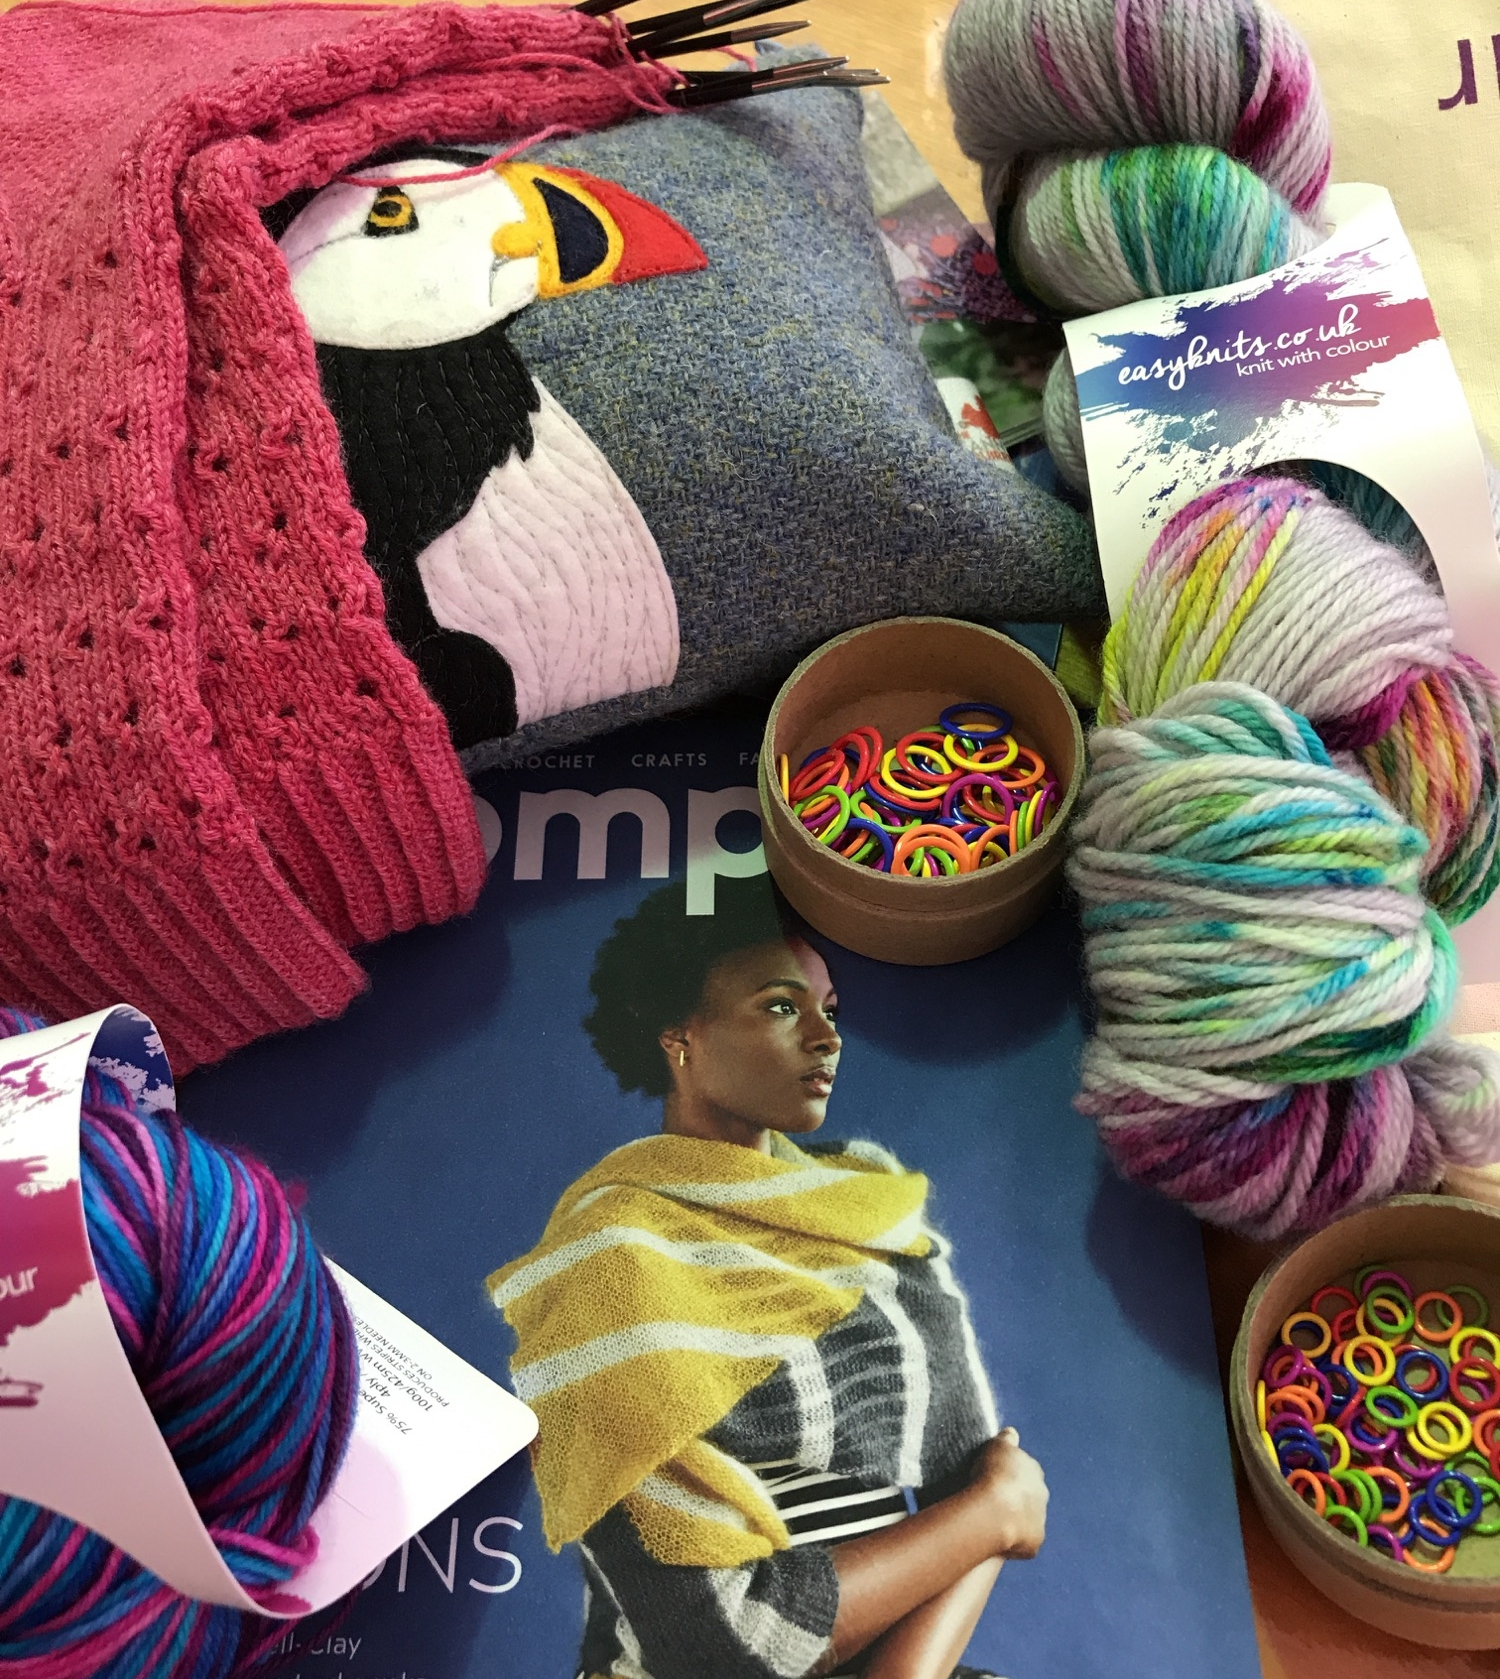 Clockwise starting at top left: My Antirrhinum socks in progress, sitting on my Canny Squirrel Puffin project bag (not purchased at the show). EasyKnits Dusted Dreams DK in Rio on Gris colourway. Cocoknits stitch markers in small and standard sizes, purchased from A Yarn Story. A copy of PomPom magazine for a friend. EasyKnits Gobstopper in the Killer Queen colourway for striped socks.